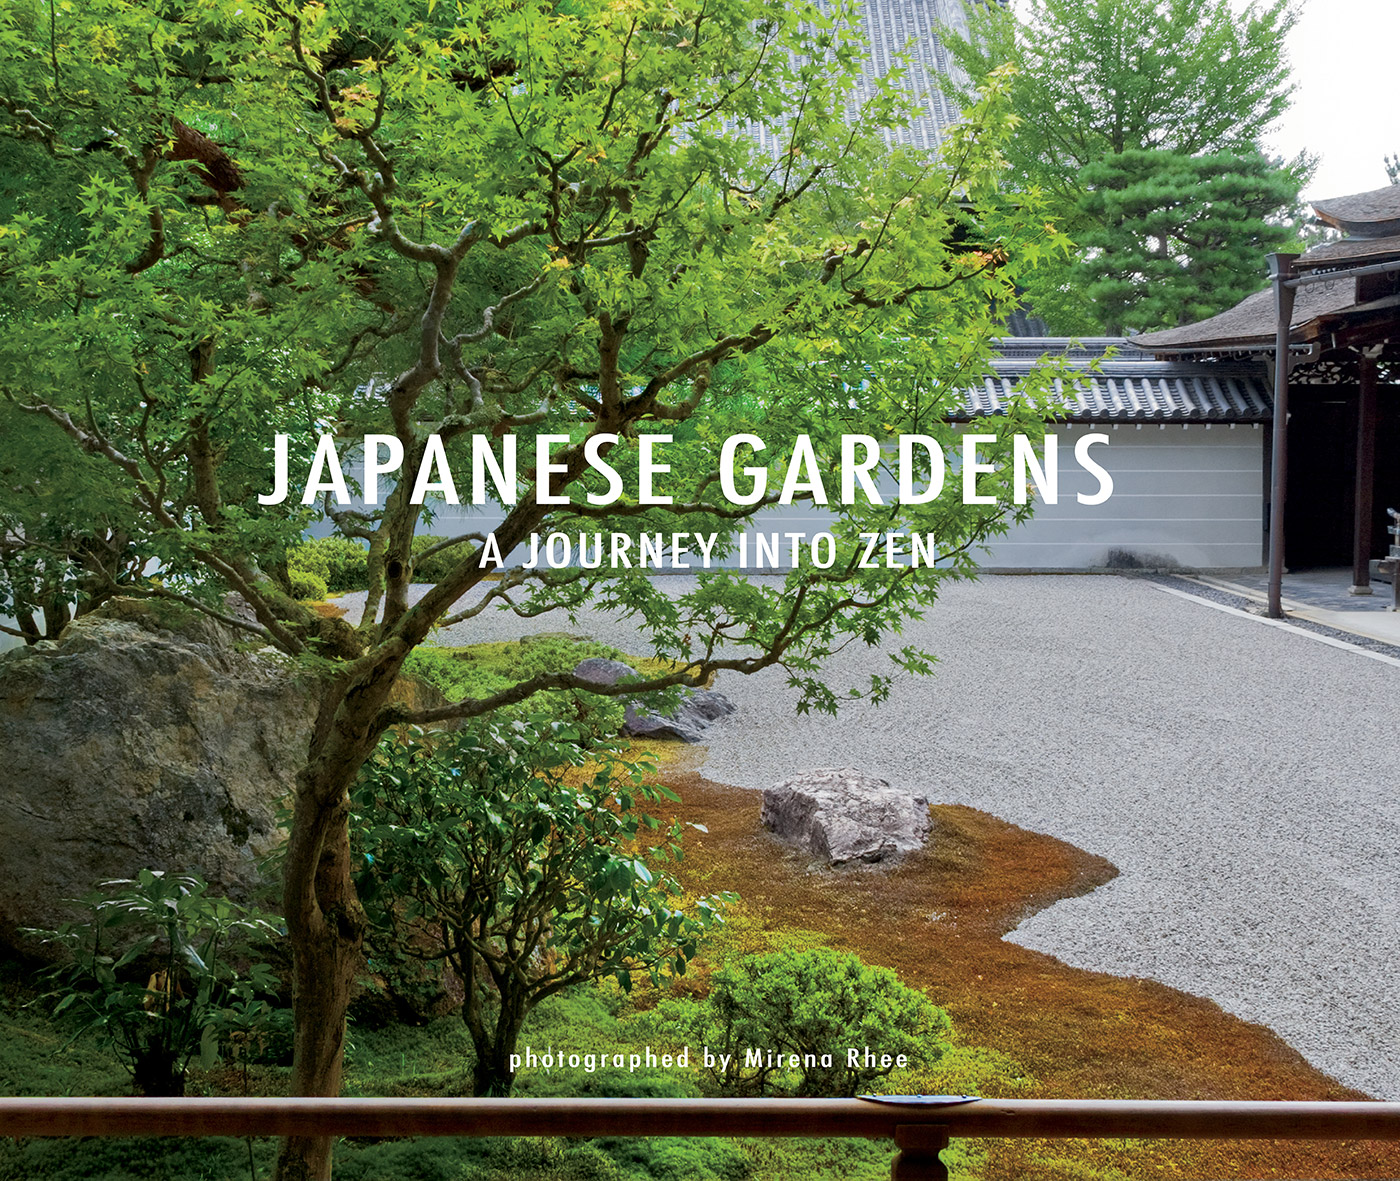 Japanese Gardens, A Journey into Zen, book by Mirena Rhee